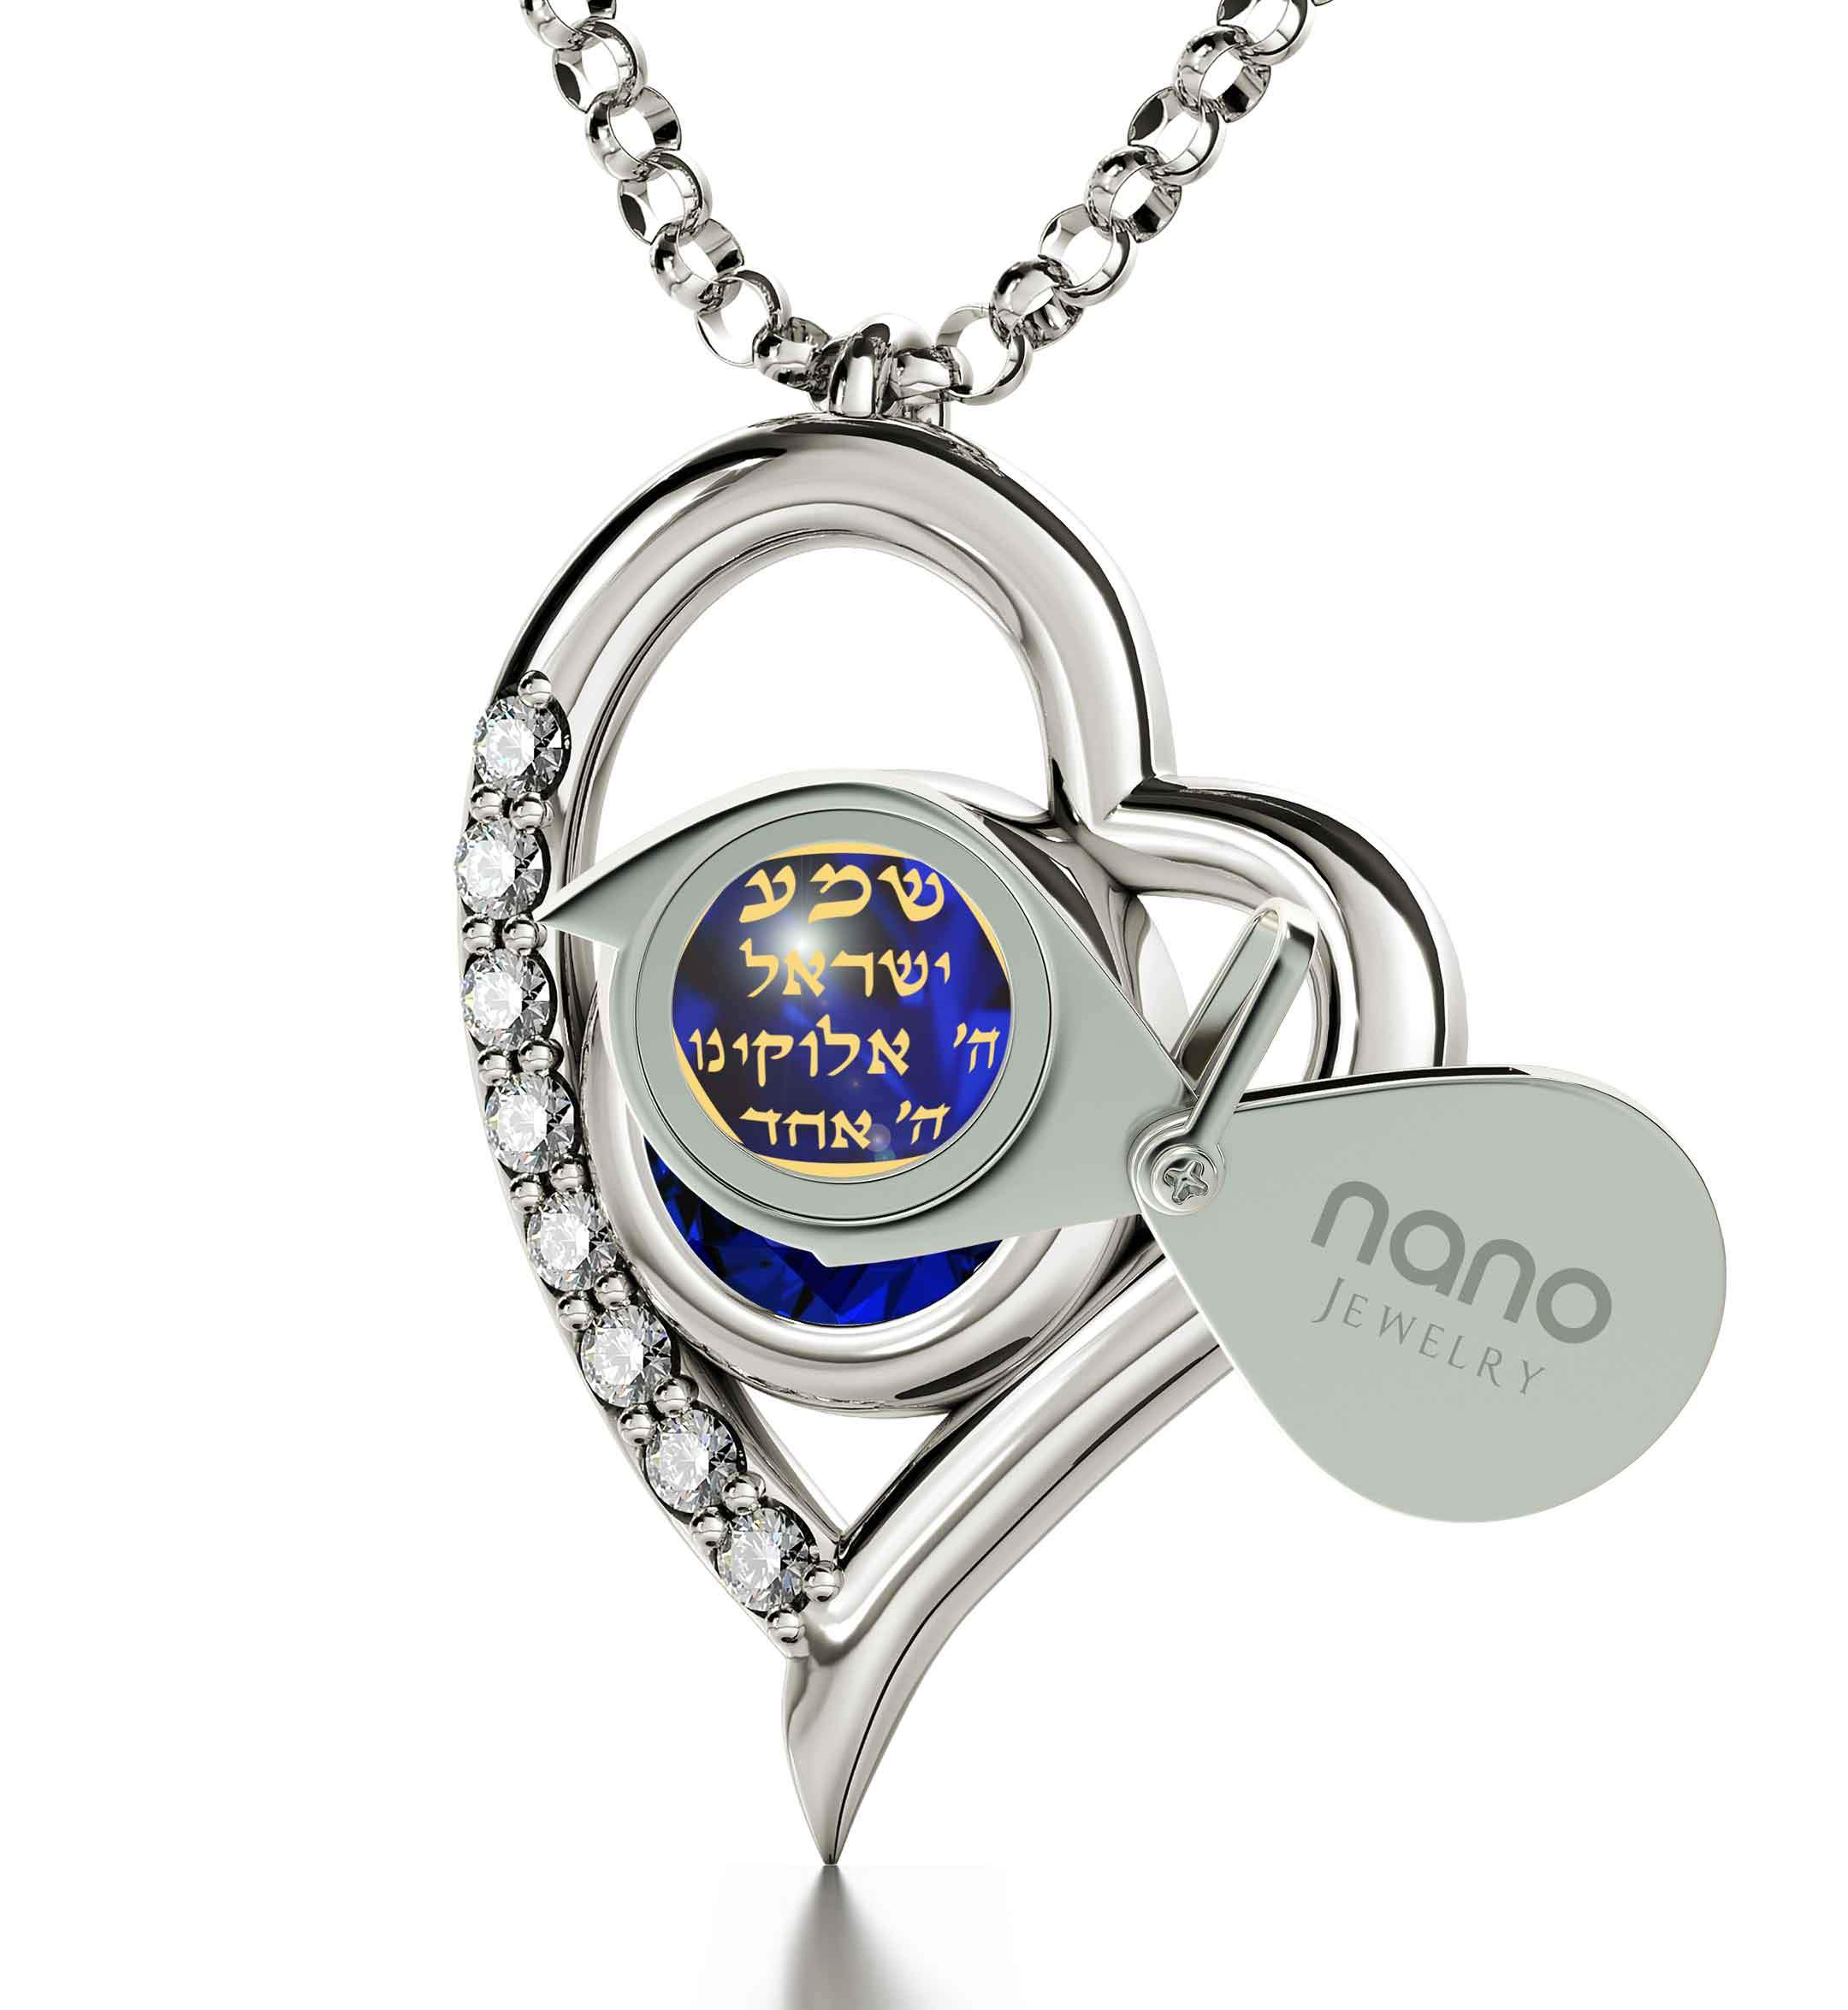 """Shema Yisrael"" Engraved in 24k, Israeli Jewelry with Blue Stone Pendant, Jewish Gifts, Nano Jewelry"